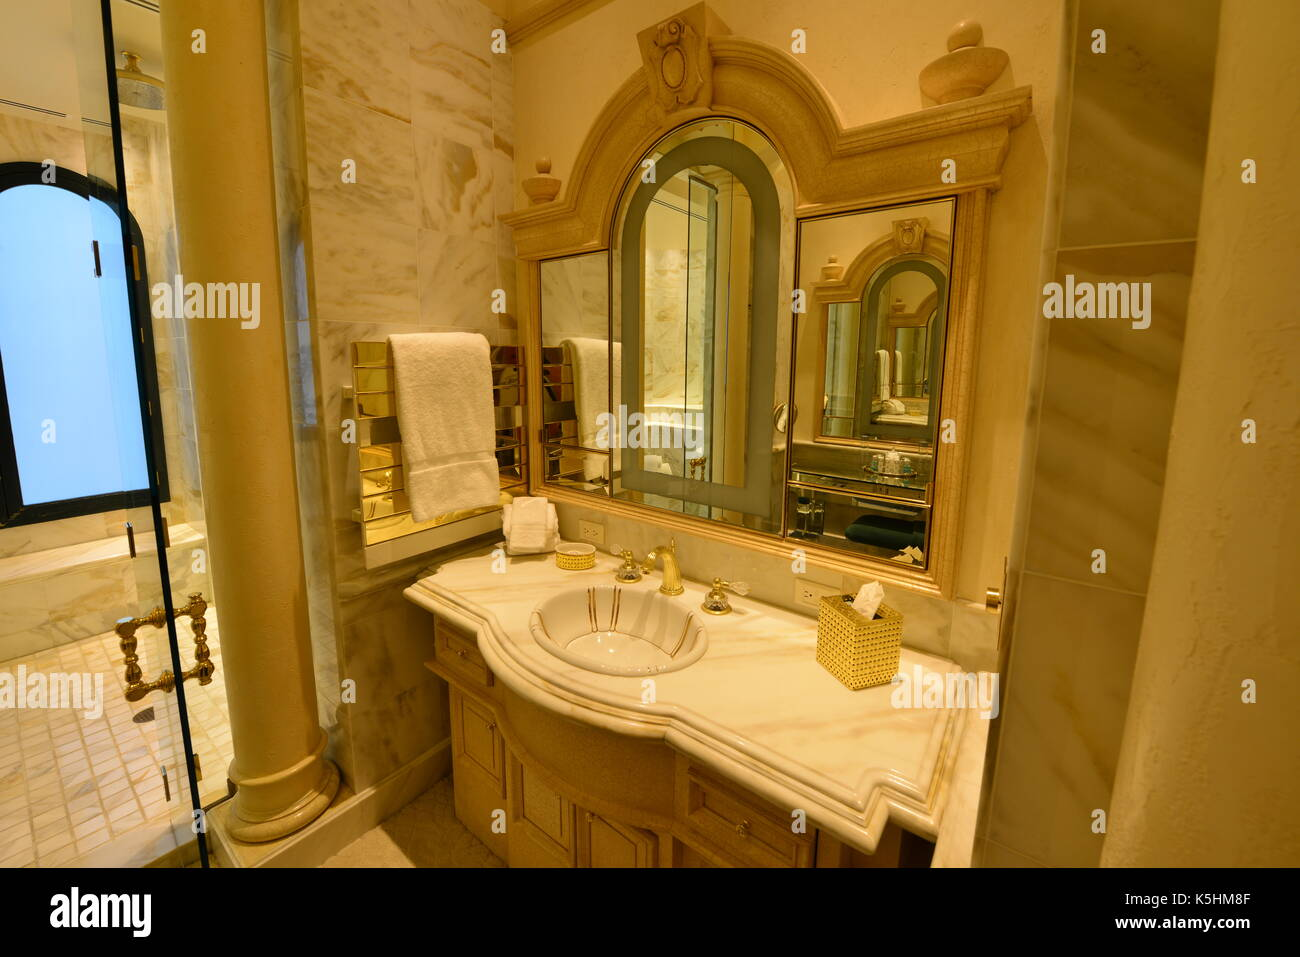 Renovation Salle De Bain Chambery ~ Hilton Hotel Bathroom Photos Hilton Hotel Bathroom Images Alamy